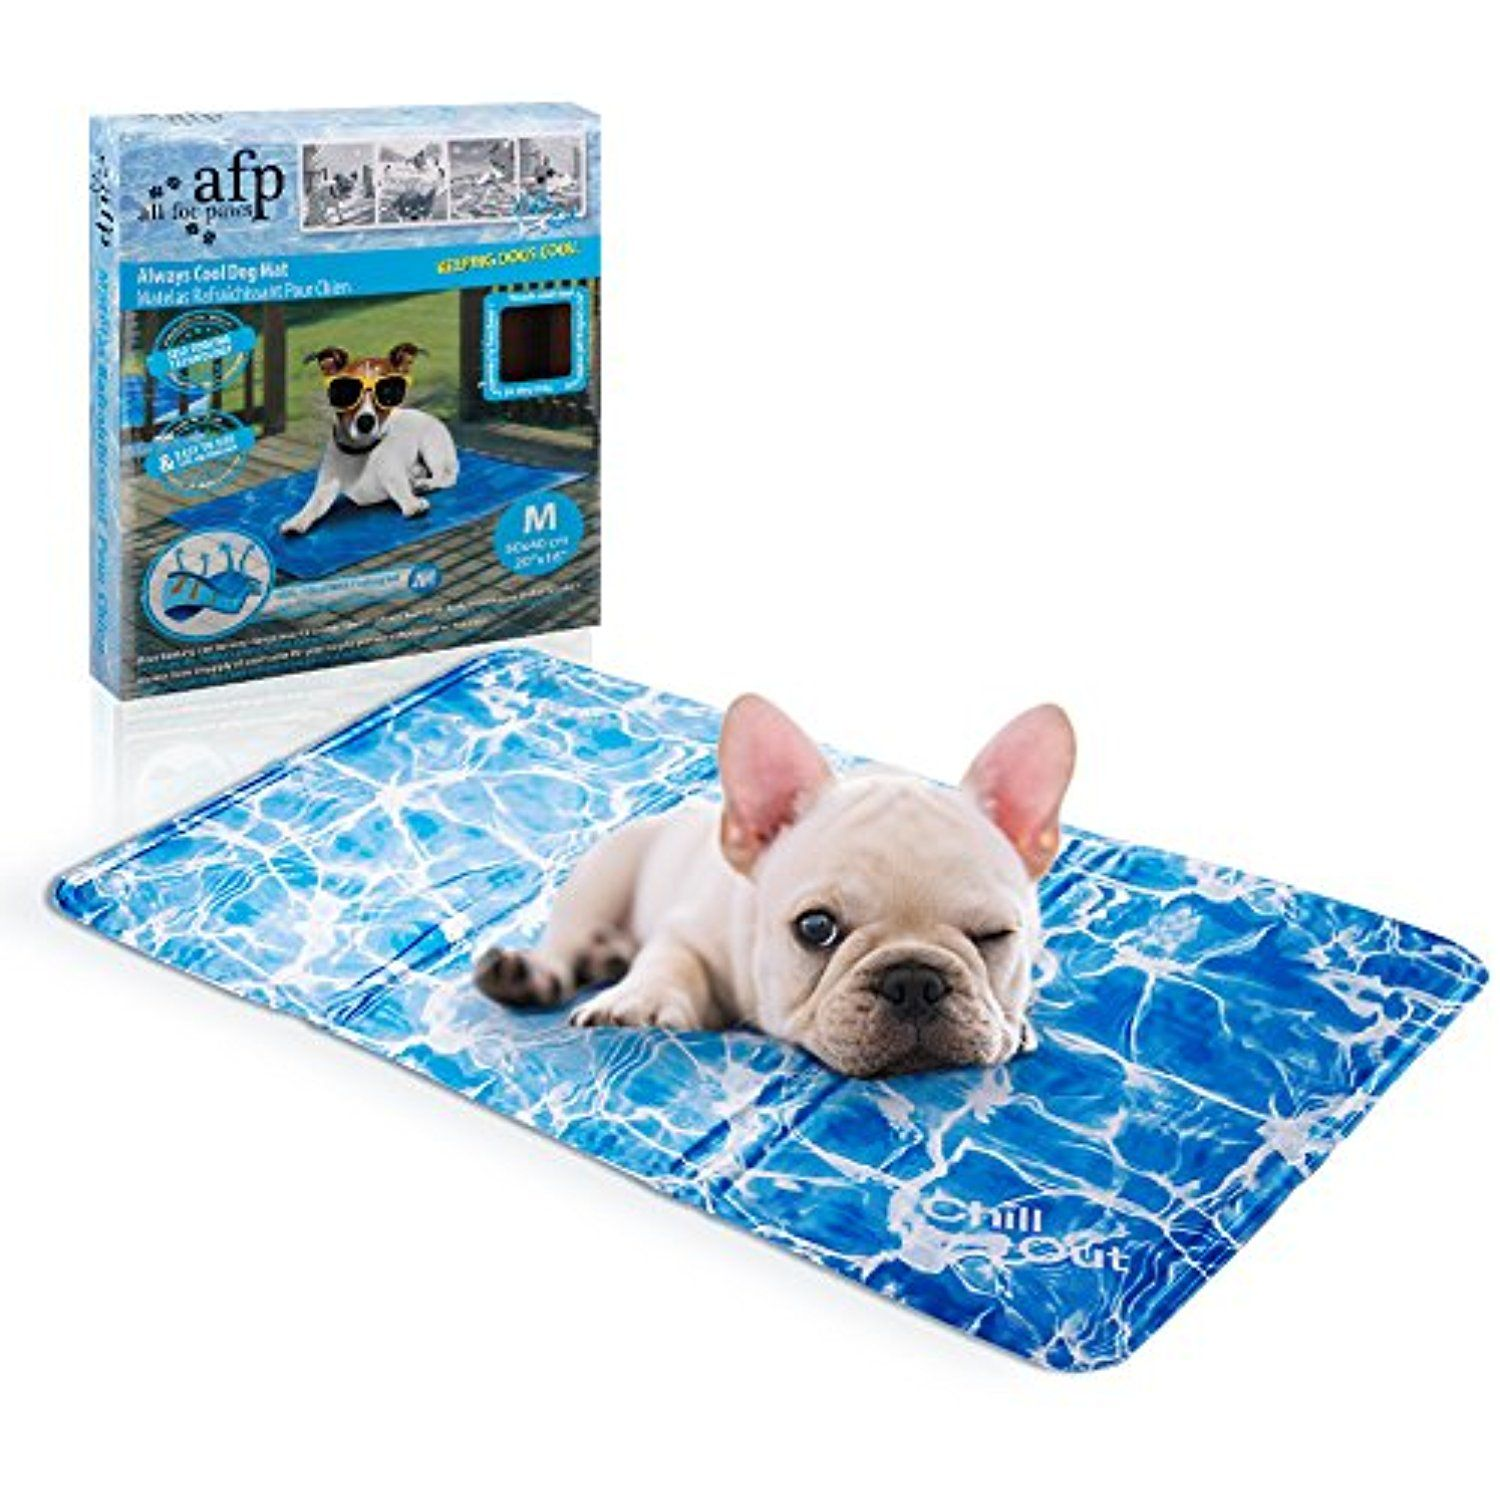 mat for cool always materassino dog rinfrescante imac dogs cushions en cooling mats toys